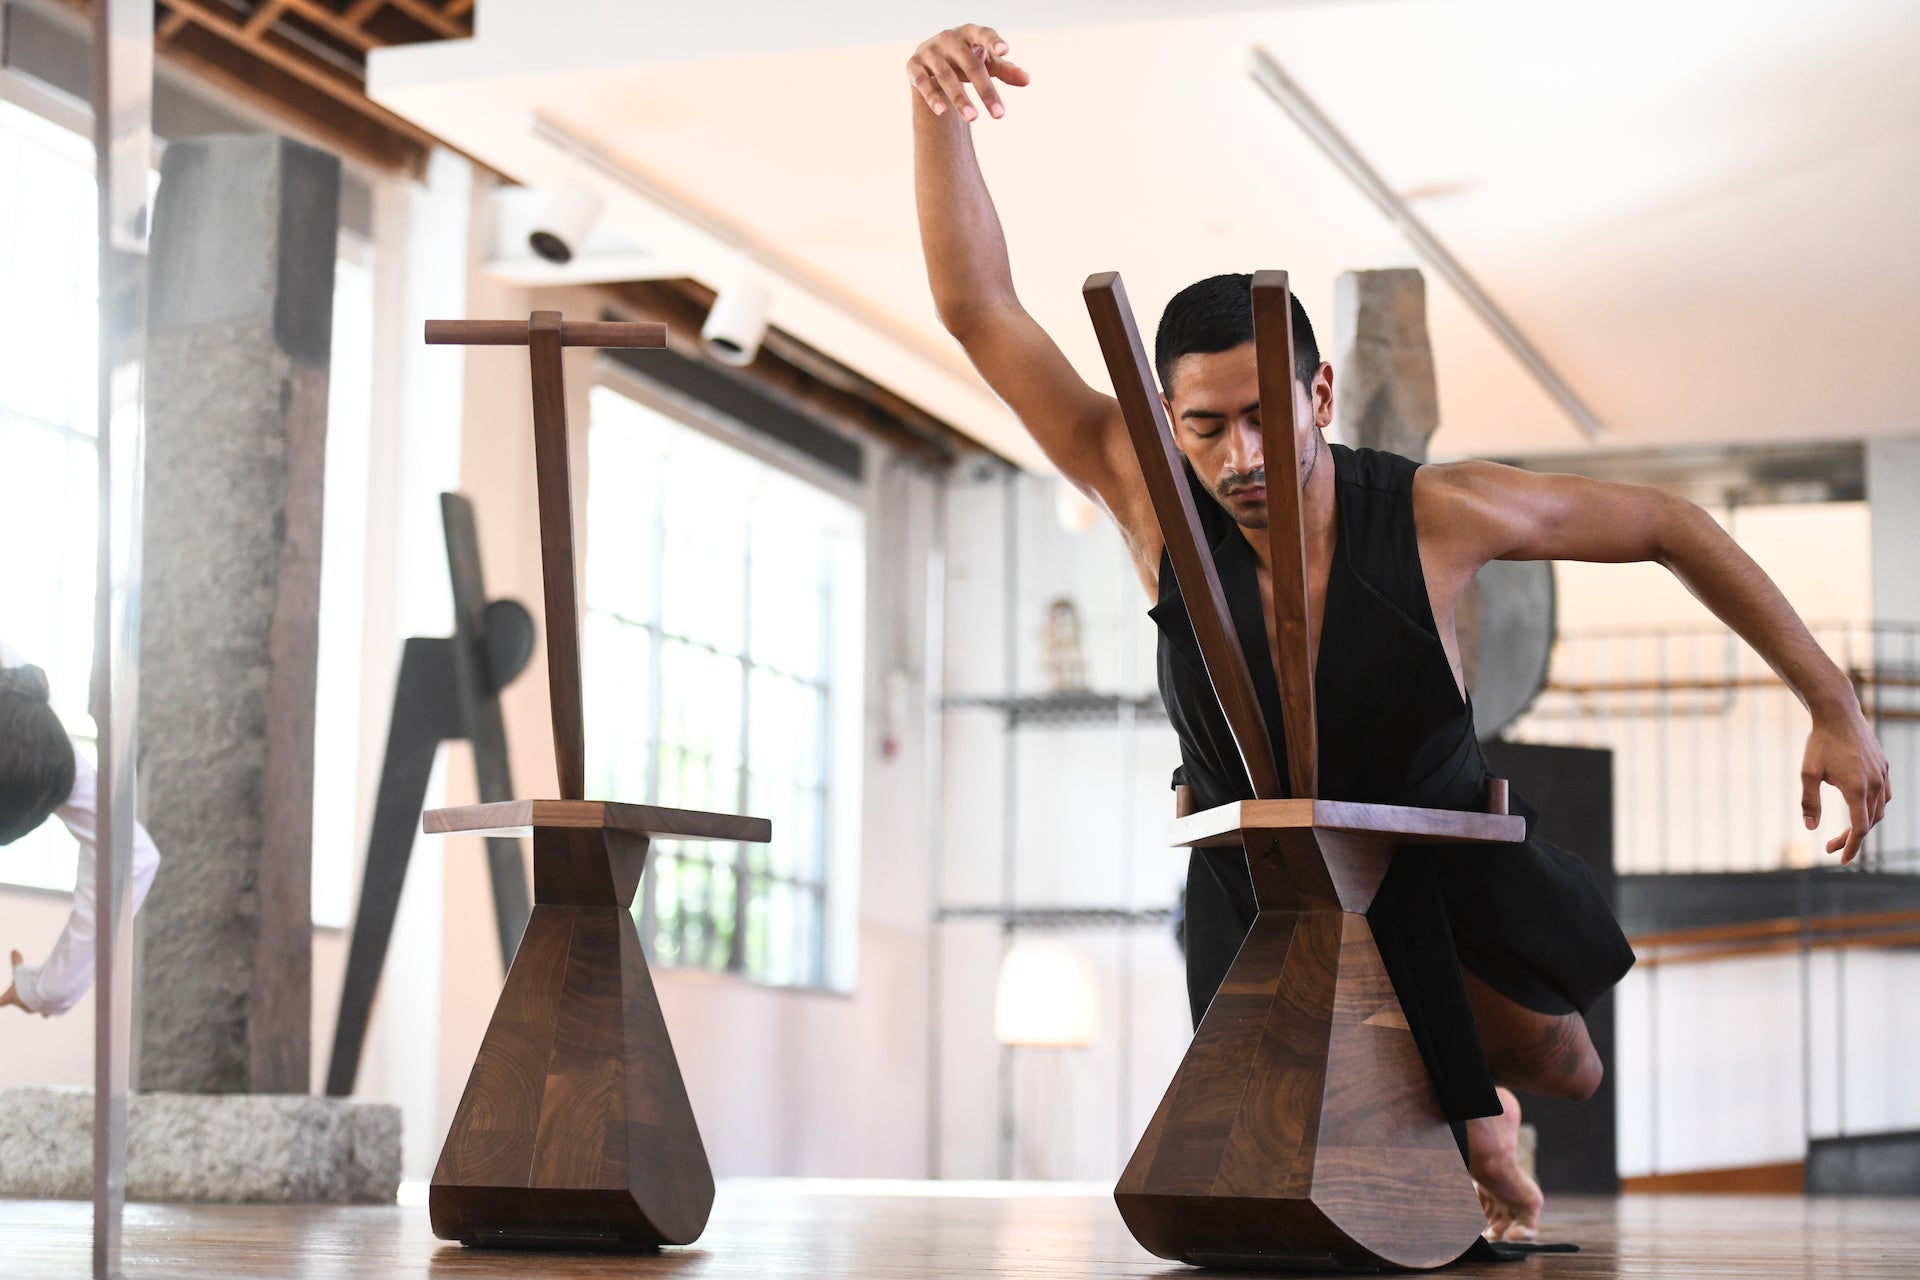 Brendan Fernandes: Contract and Release at the Noguchi Museum. 2019-2020. Photo © Matthew Carasella; courtesy of the artist and Monique Meloche Gallery